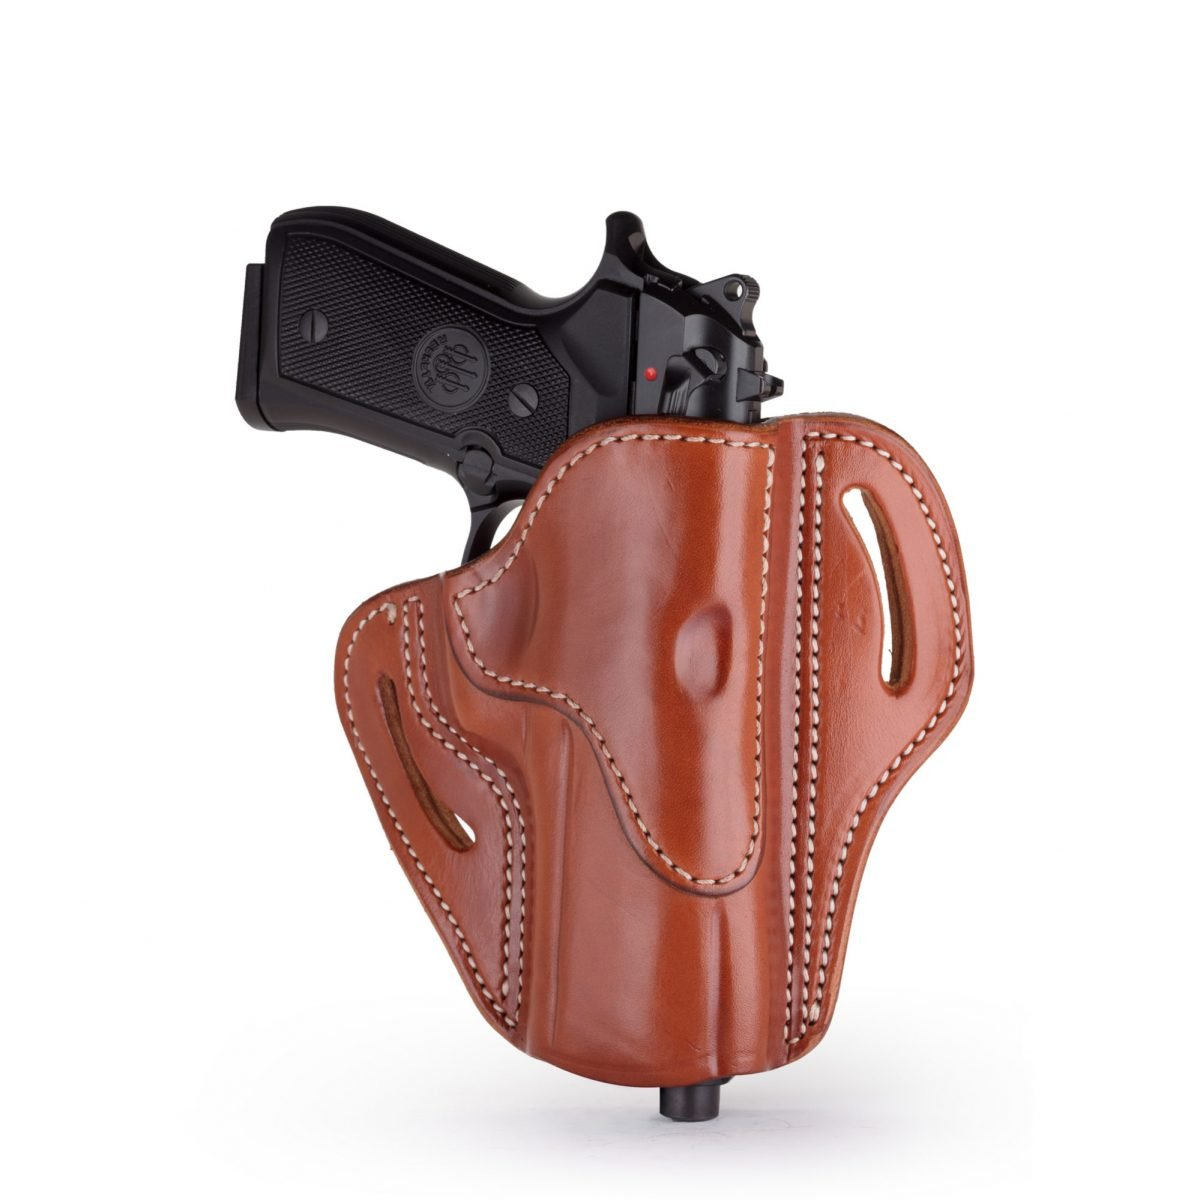 BH2 4 - Open Top Multi-Fit Holster 2 4